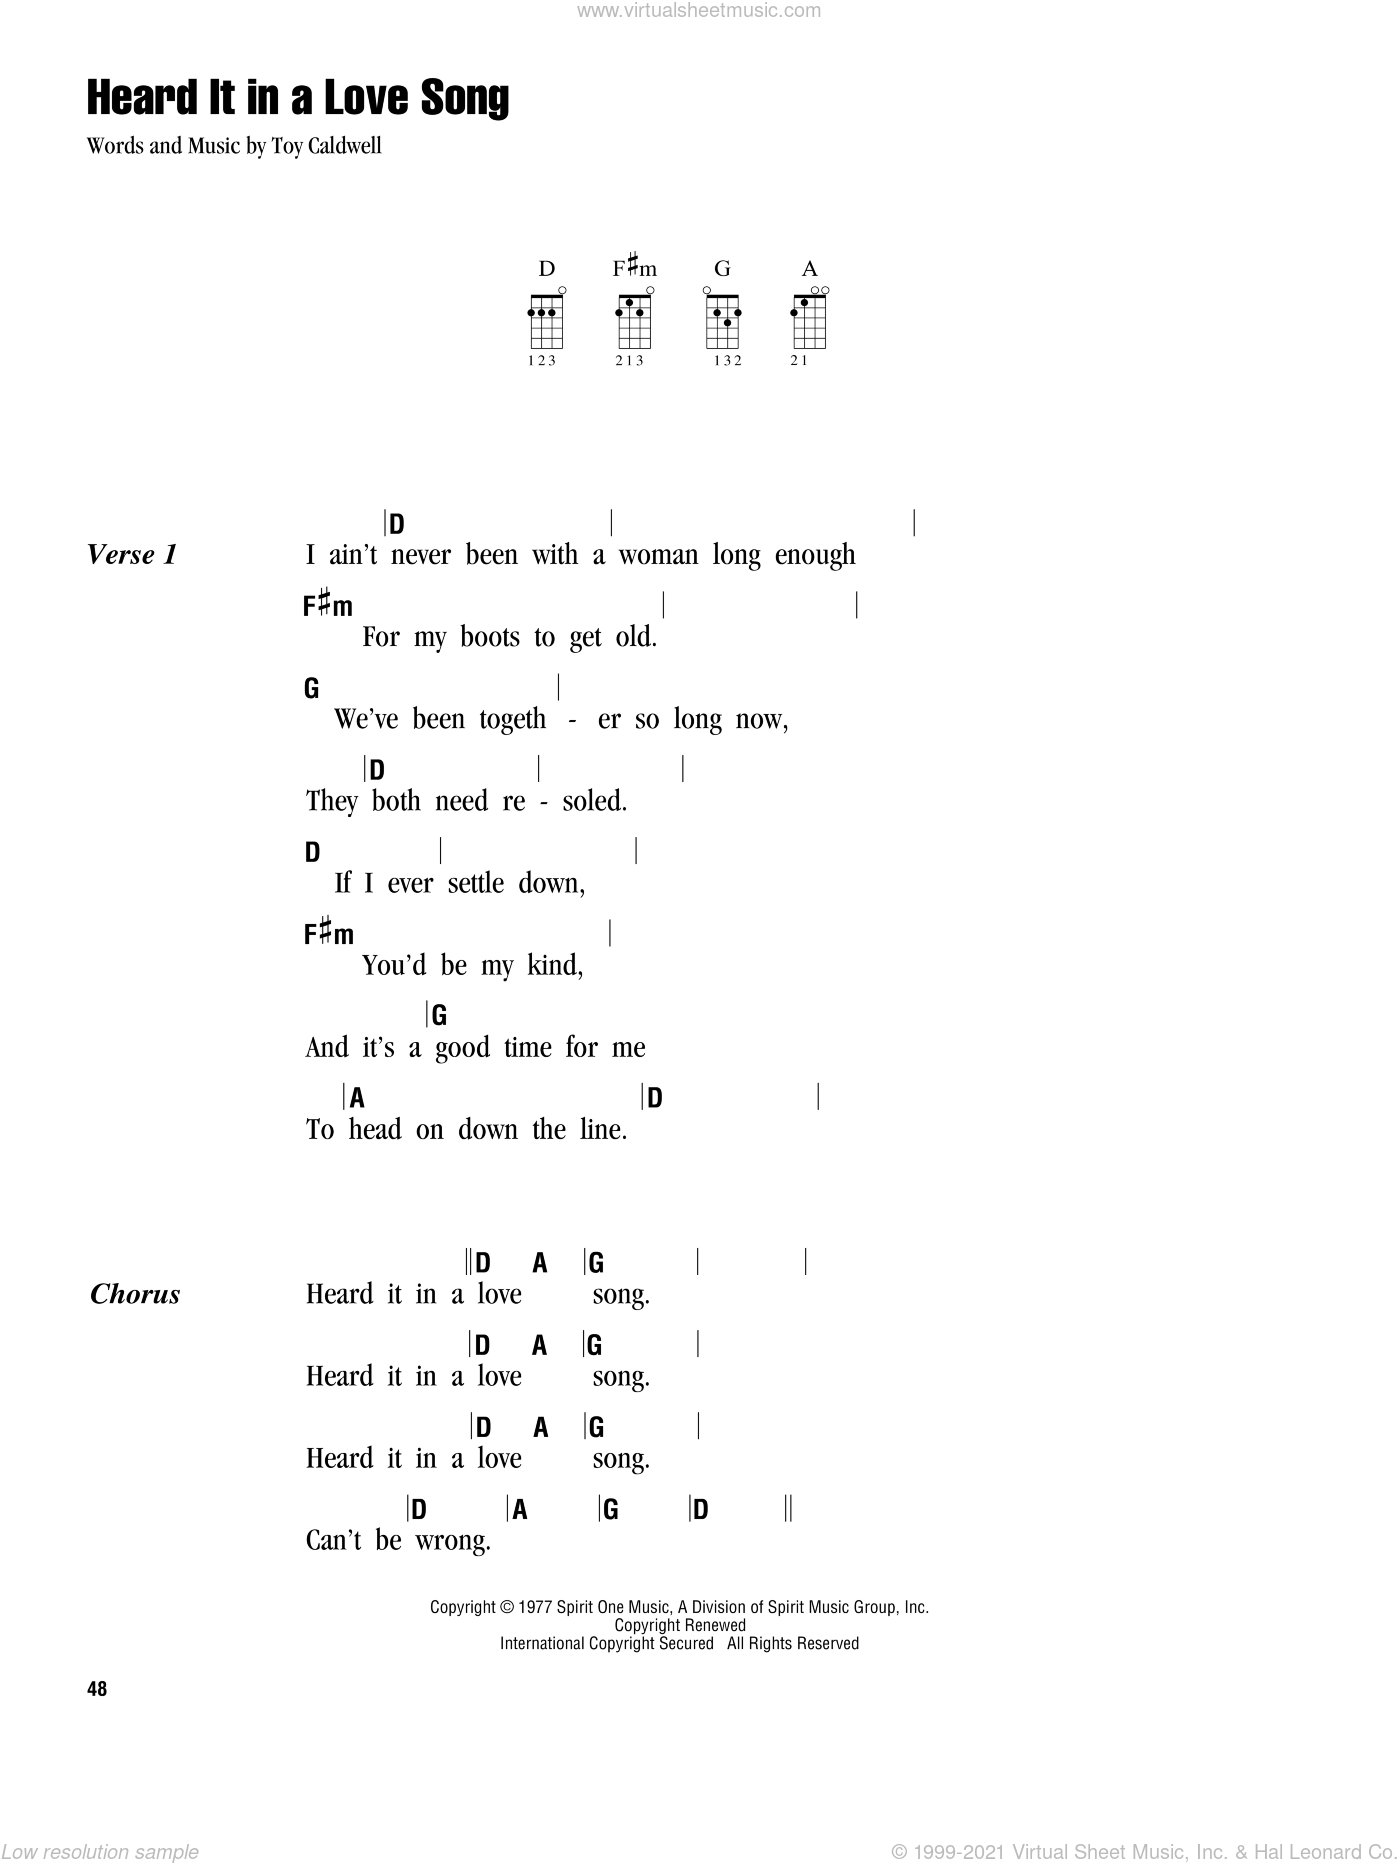 band heard it in a love song sheet music for ukulele chords. Black Bedroom Furniture Sets. Home Design Ideas